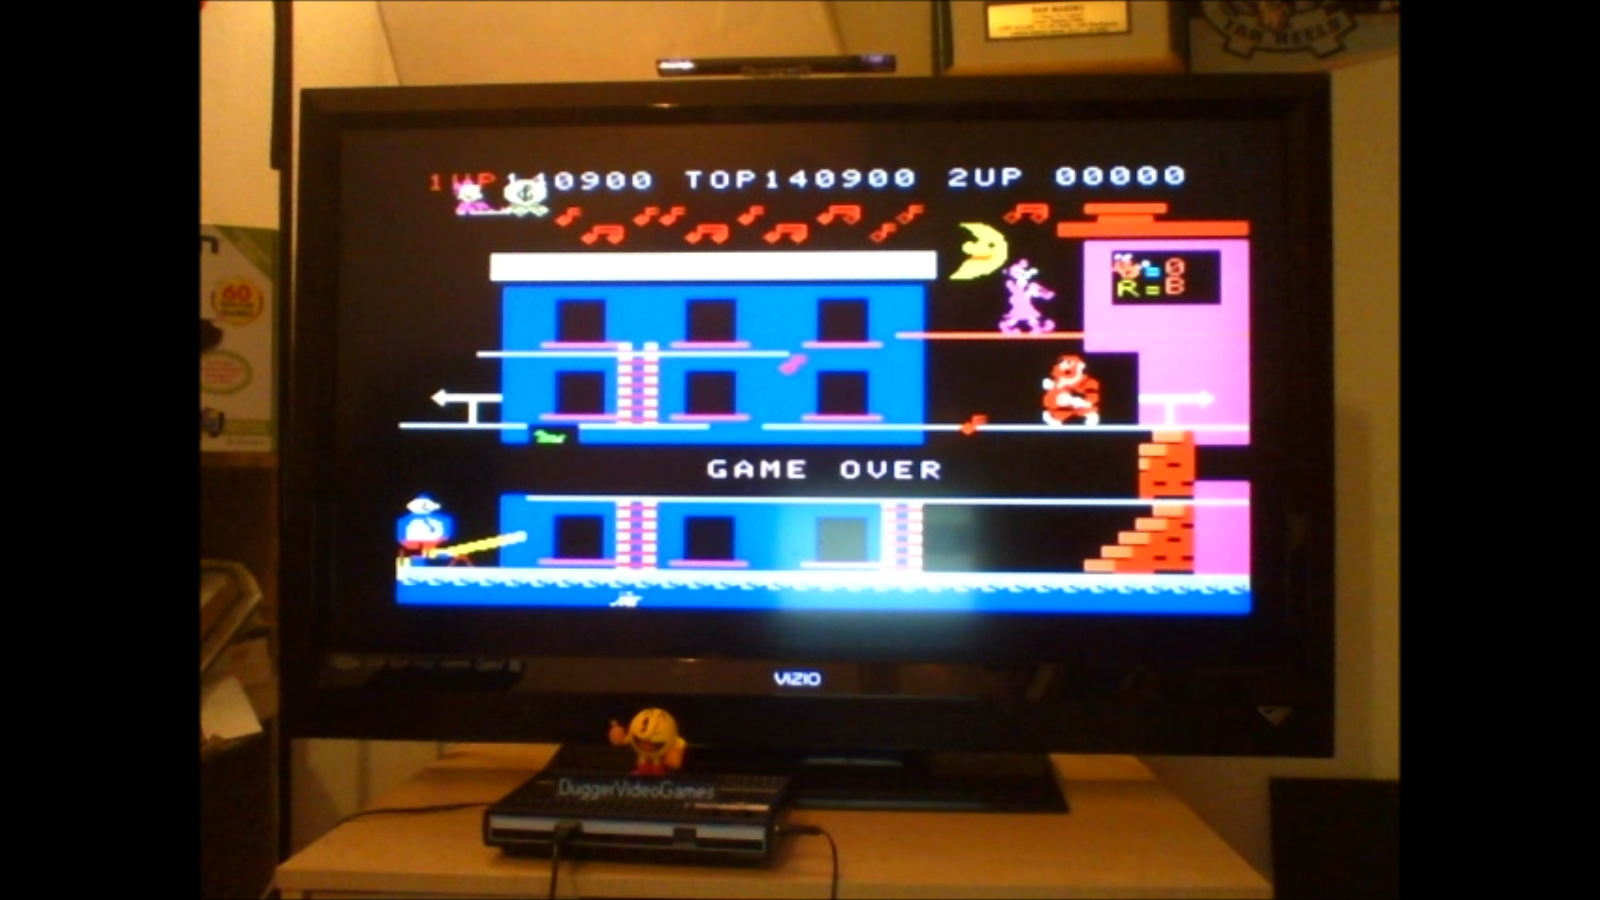 DuggerVideoGames: Popeye: Skill 1 (Colecovision Emulated) 140,900 points on 2016-07-07 22:58:27